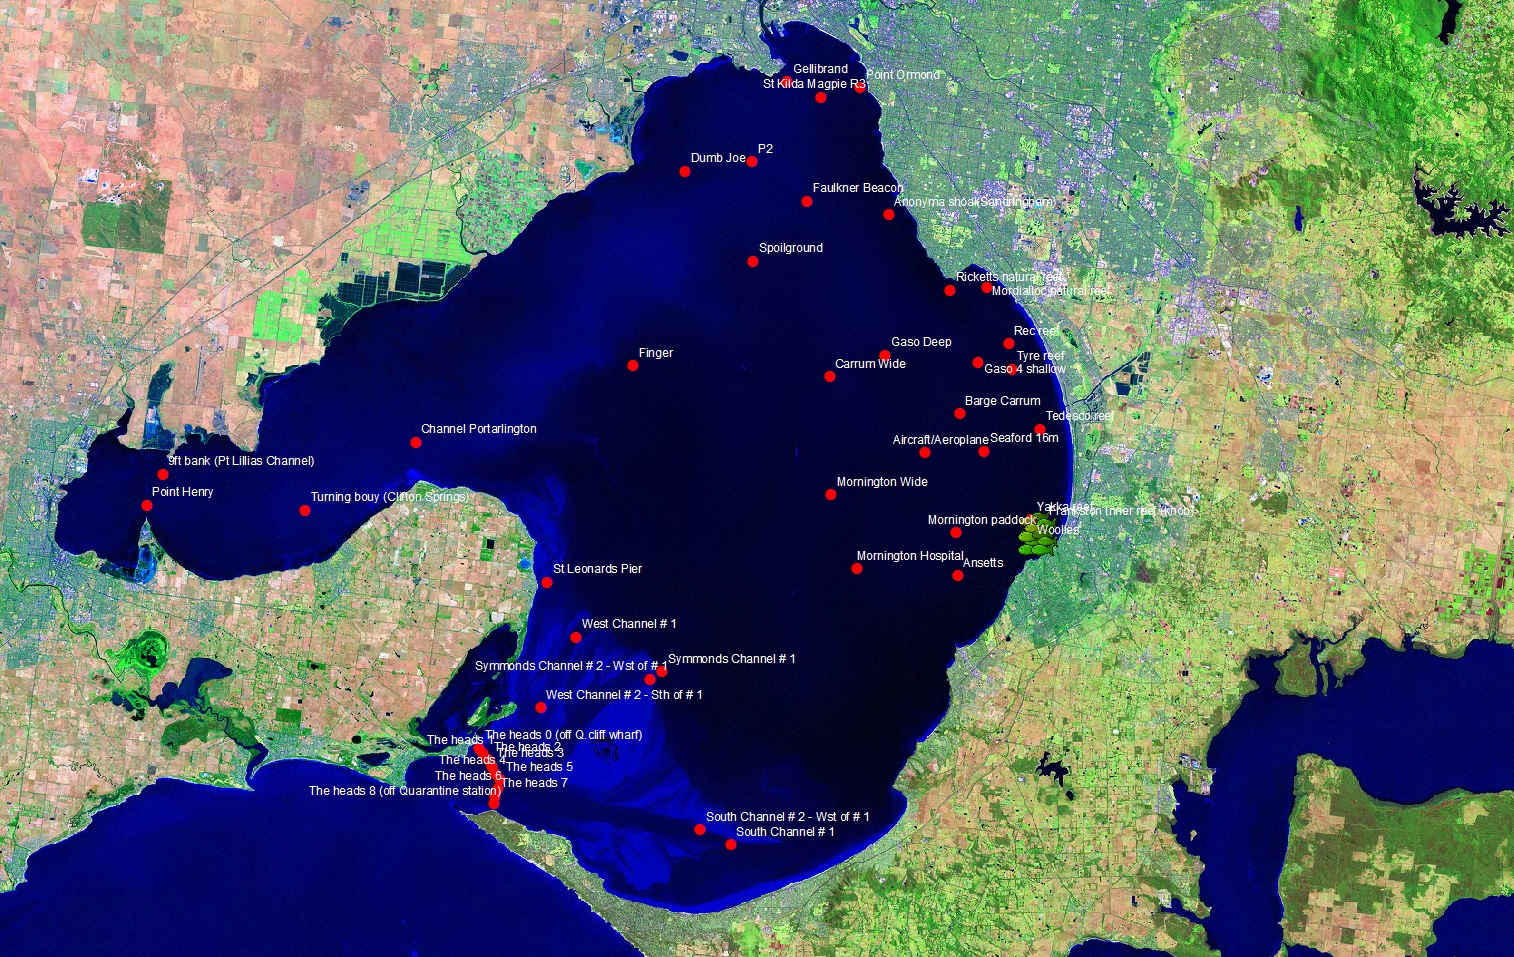 Port Phillip Bay showing locations of listening stations (red dots).